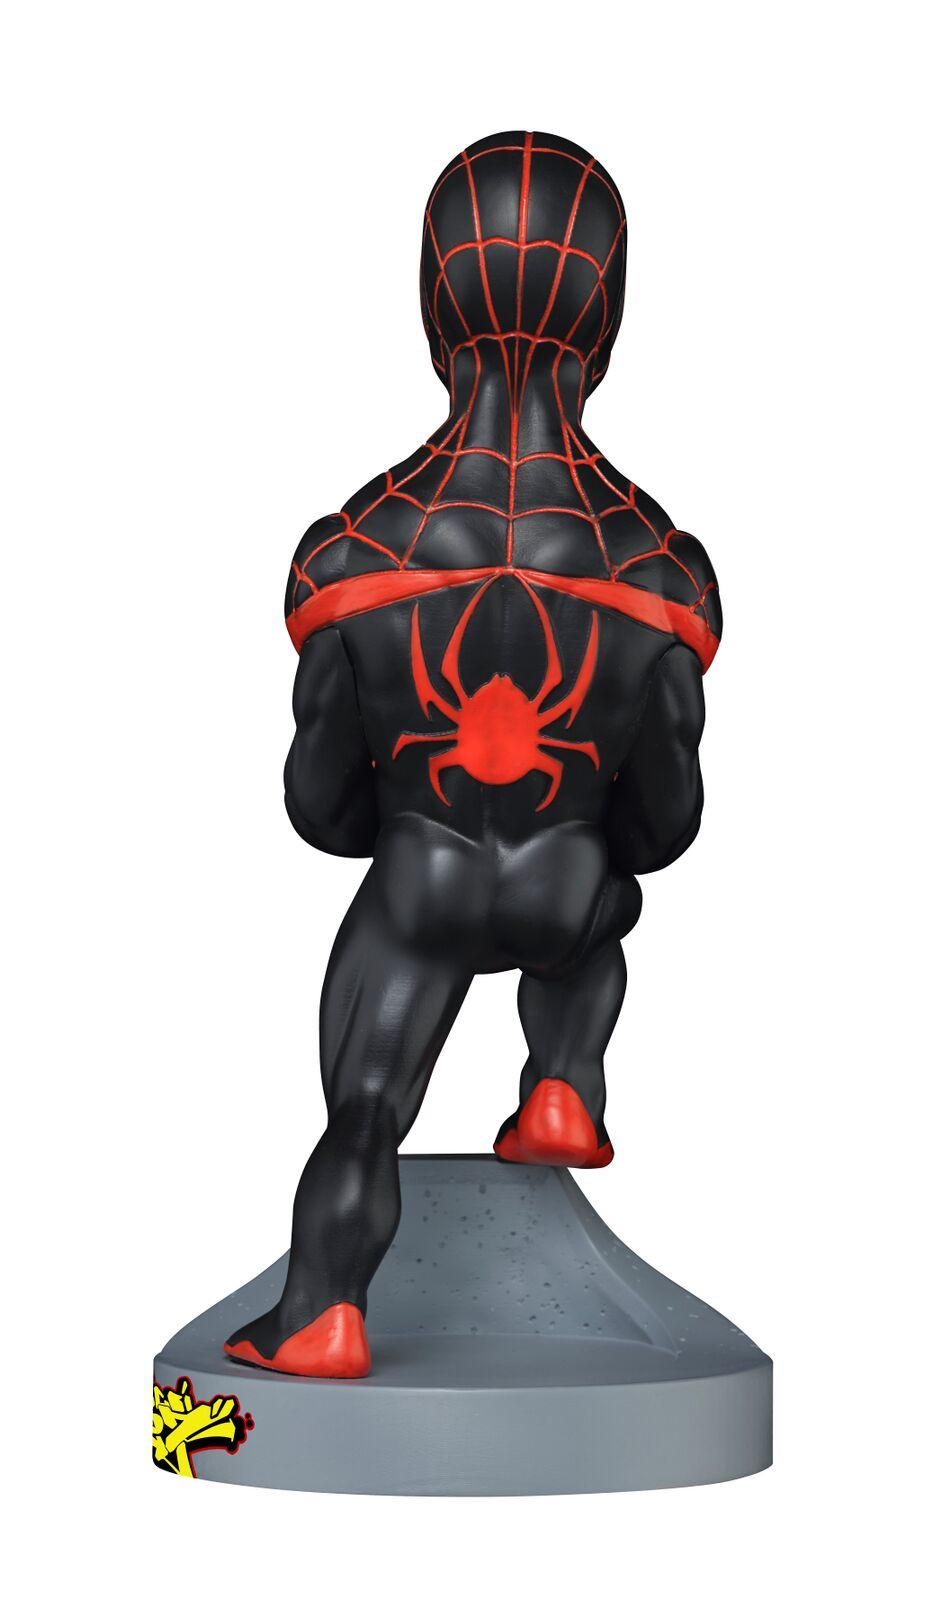 Cable Guy Controller Holder - Miles Morales Spiderman - PS4